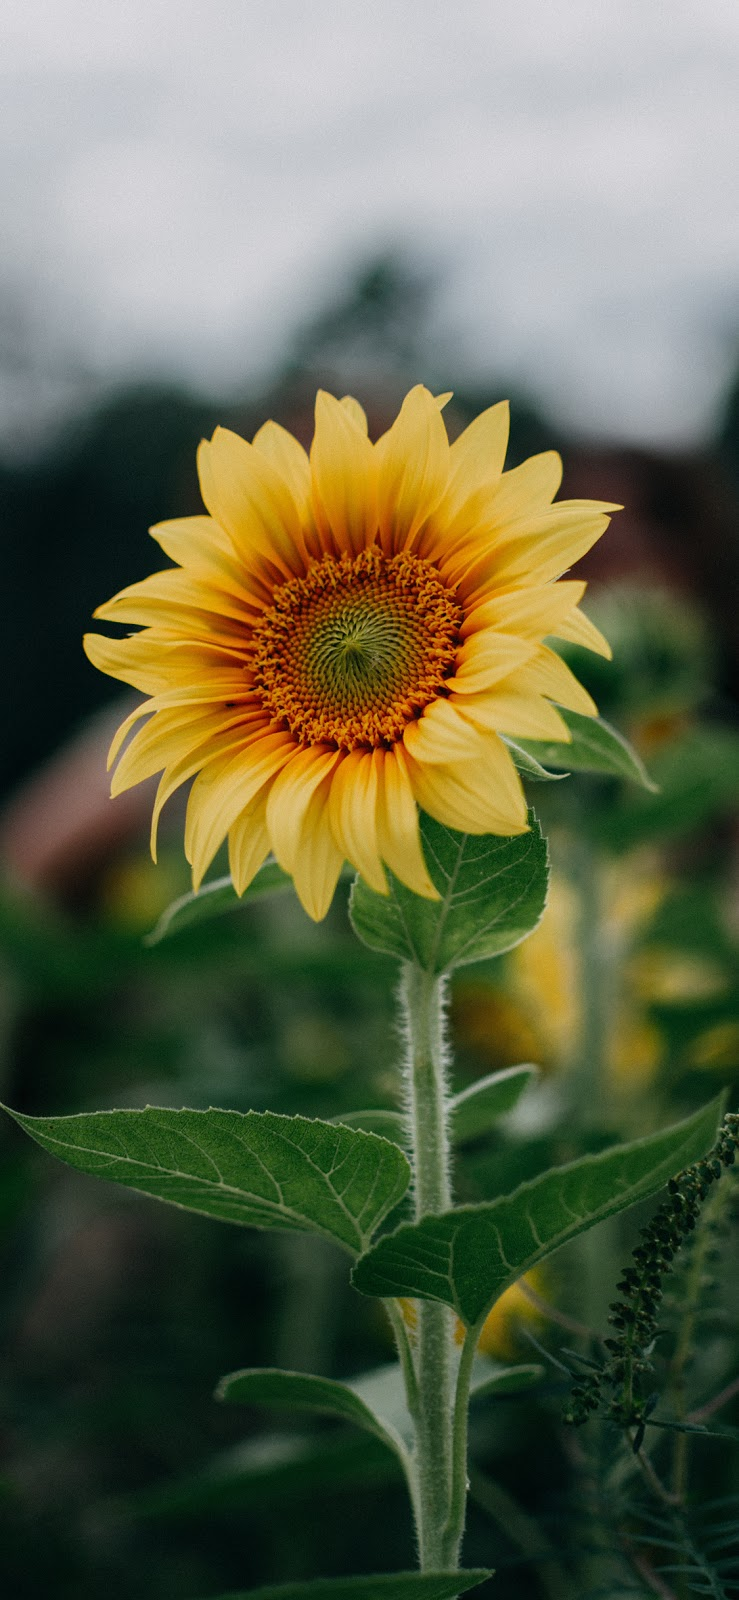 Sunflower wallpaper iphone x